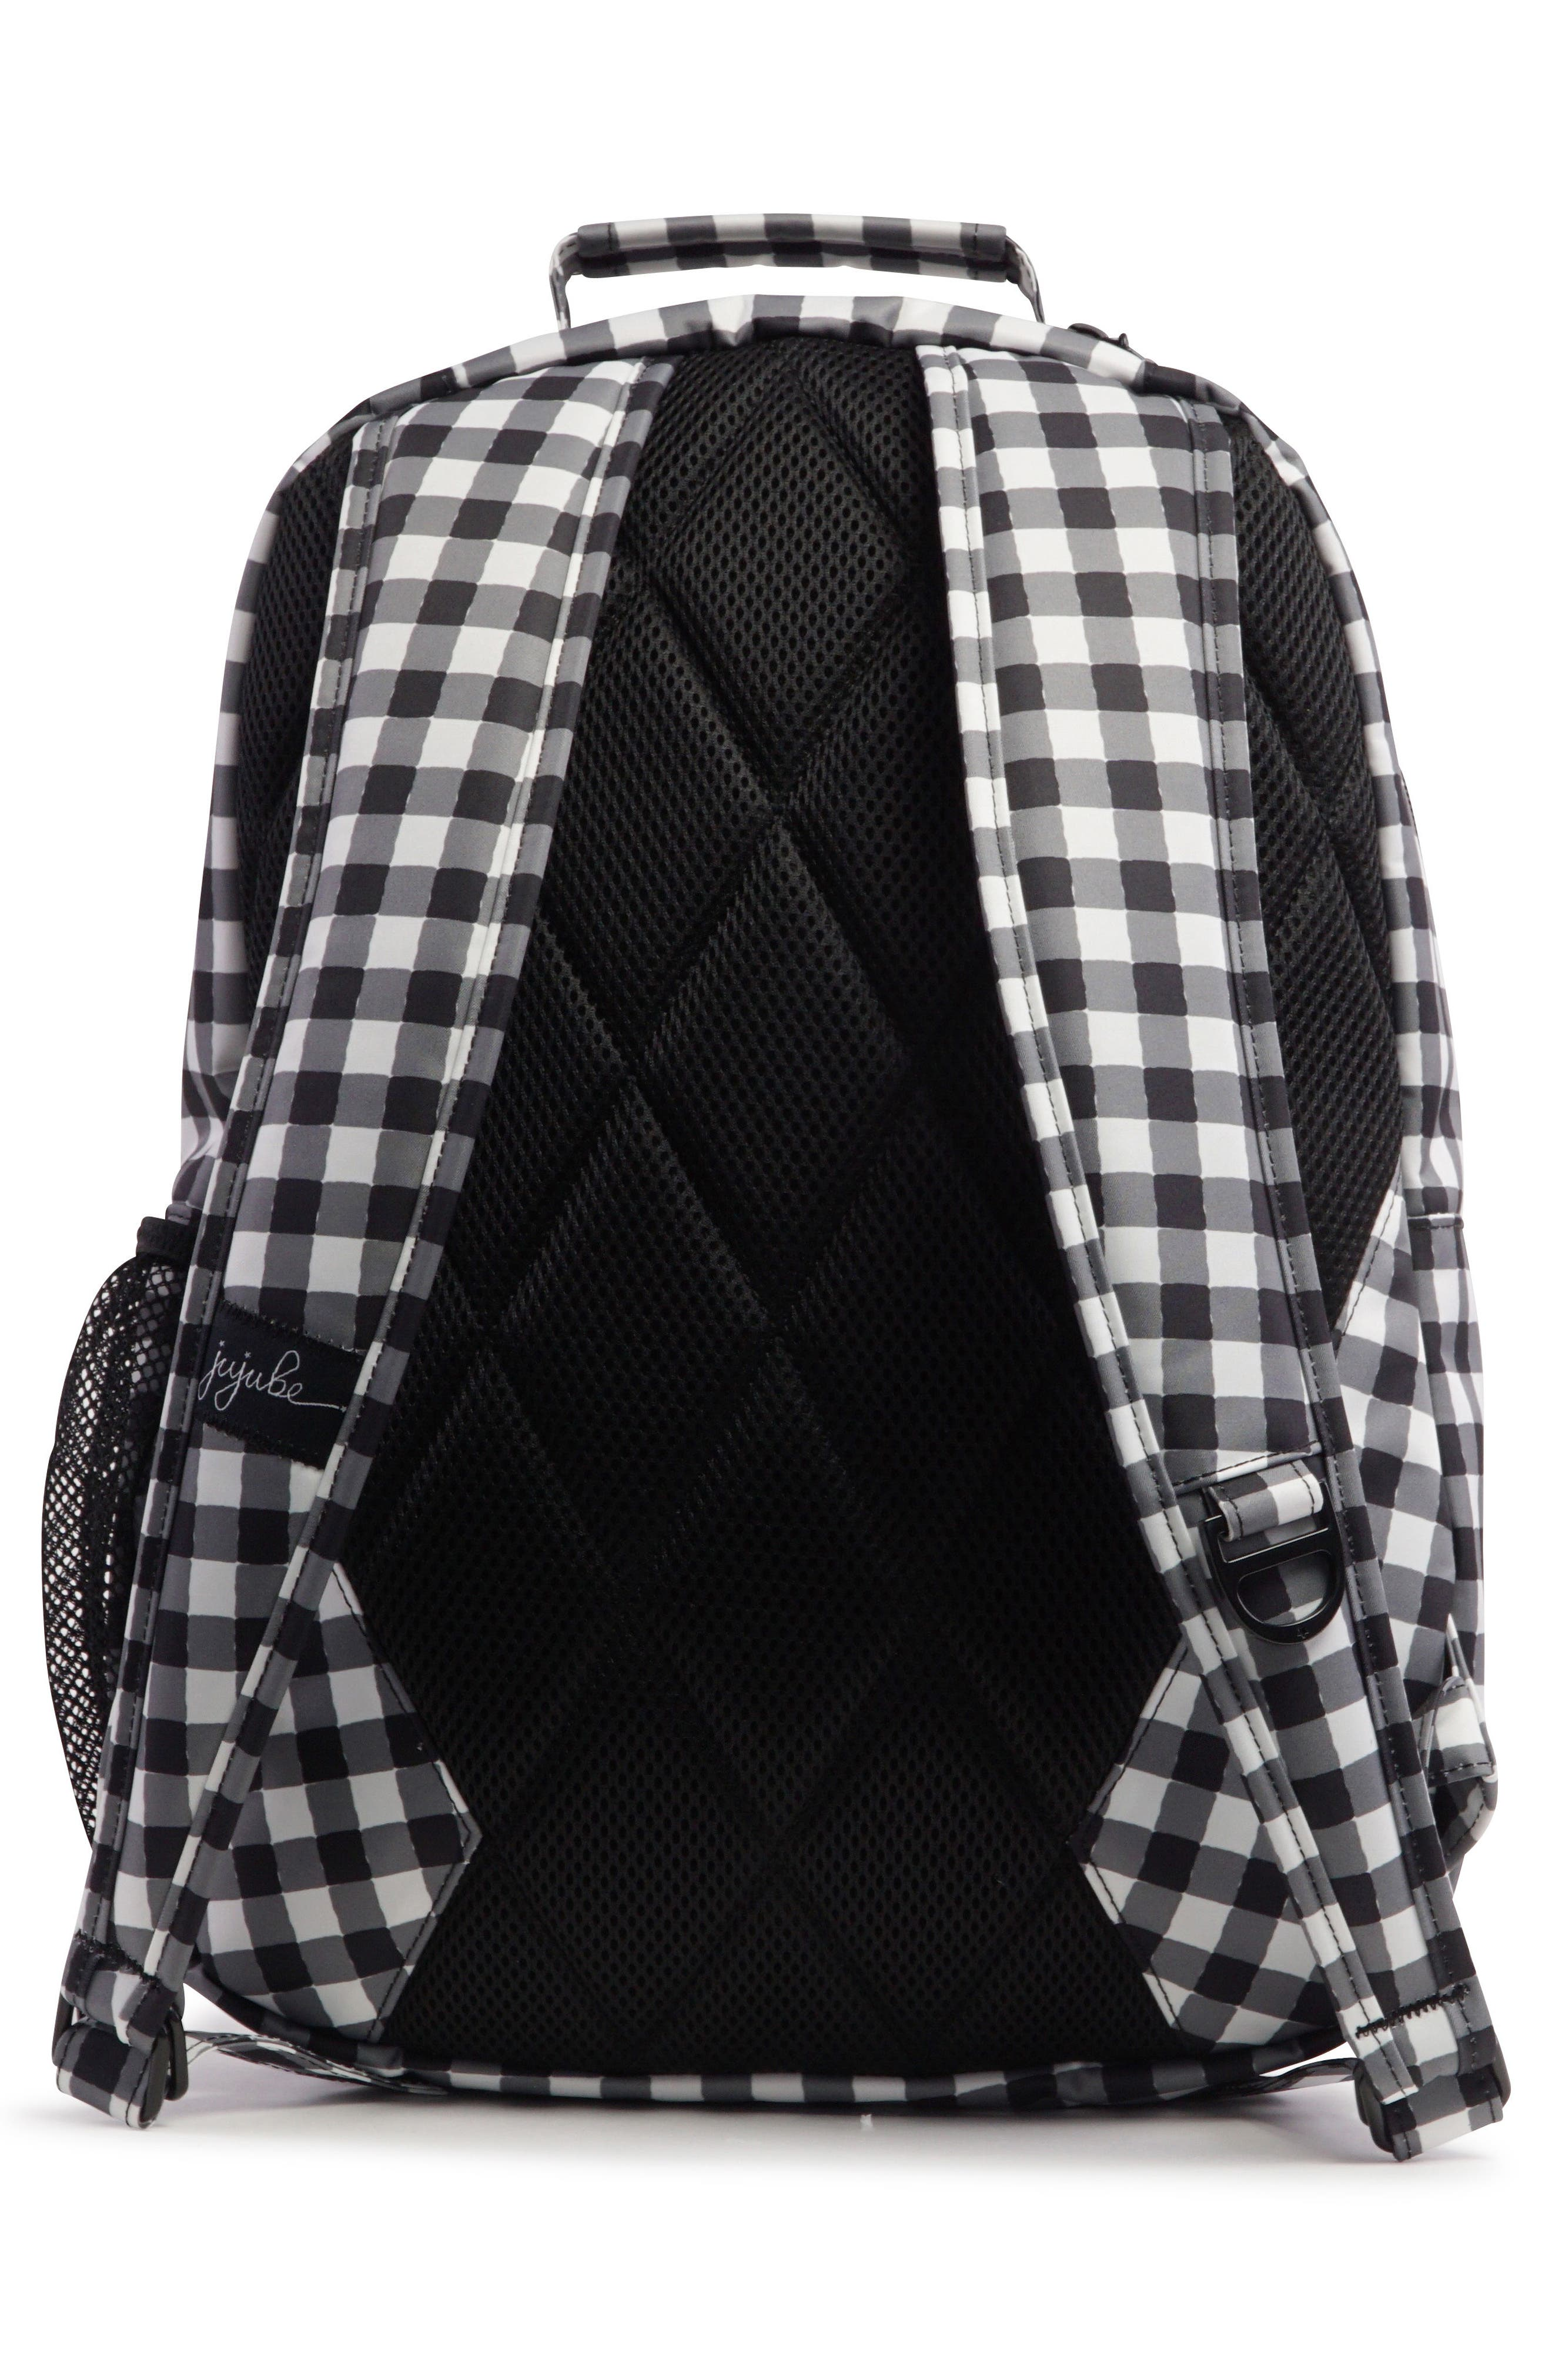 Onyx Be Packed Diaper Backpack,                             Alternate thumbnail 4, color,                             Gingham Style